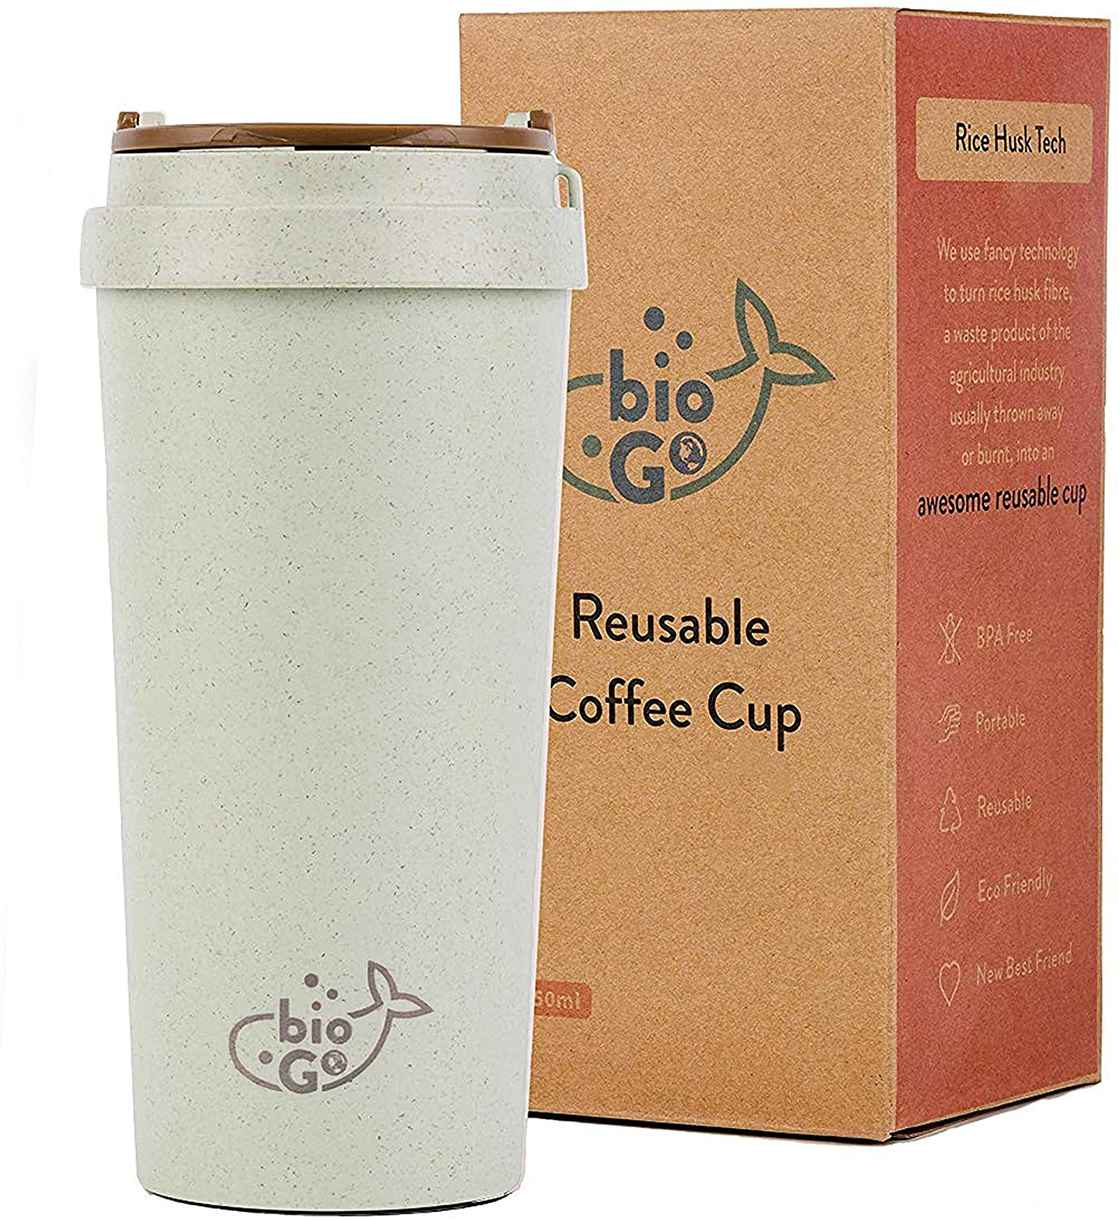 reuseable coffee cup